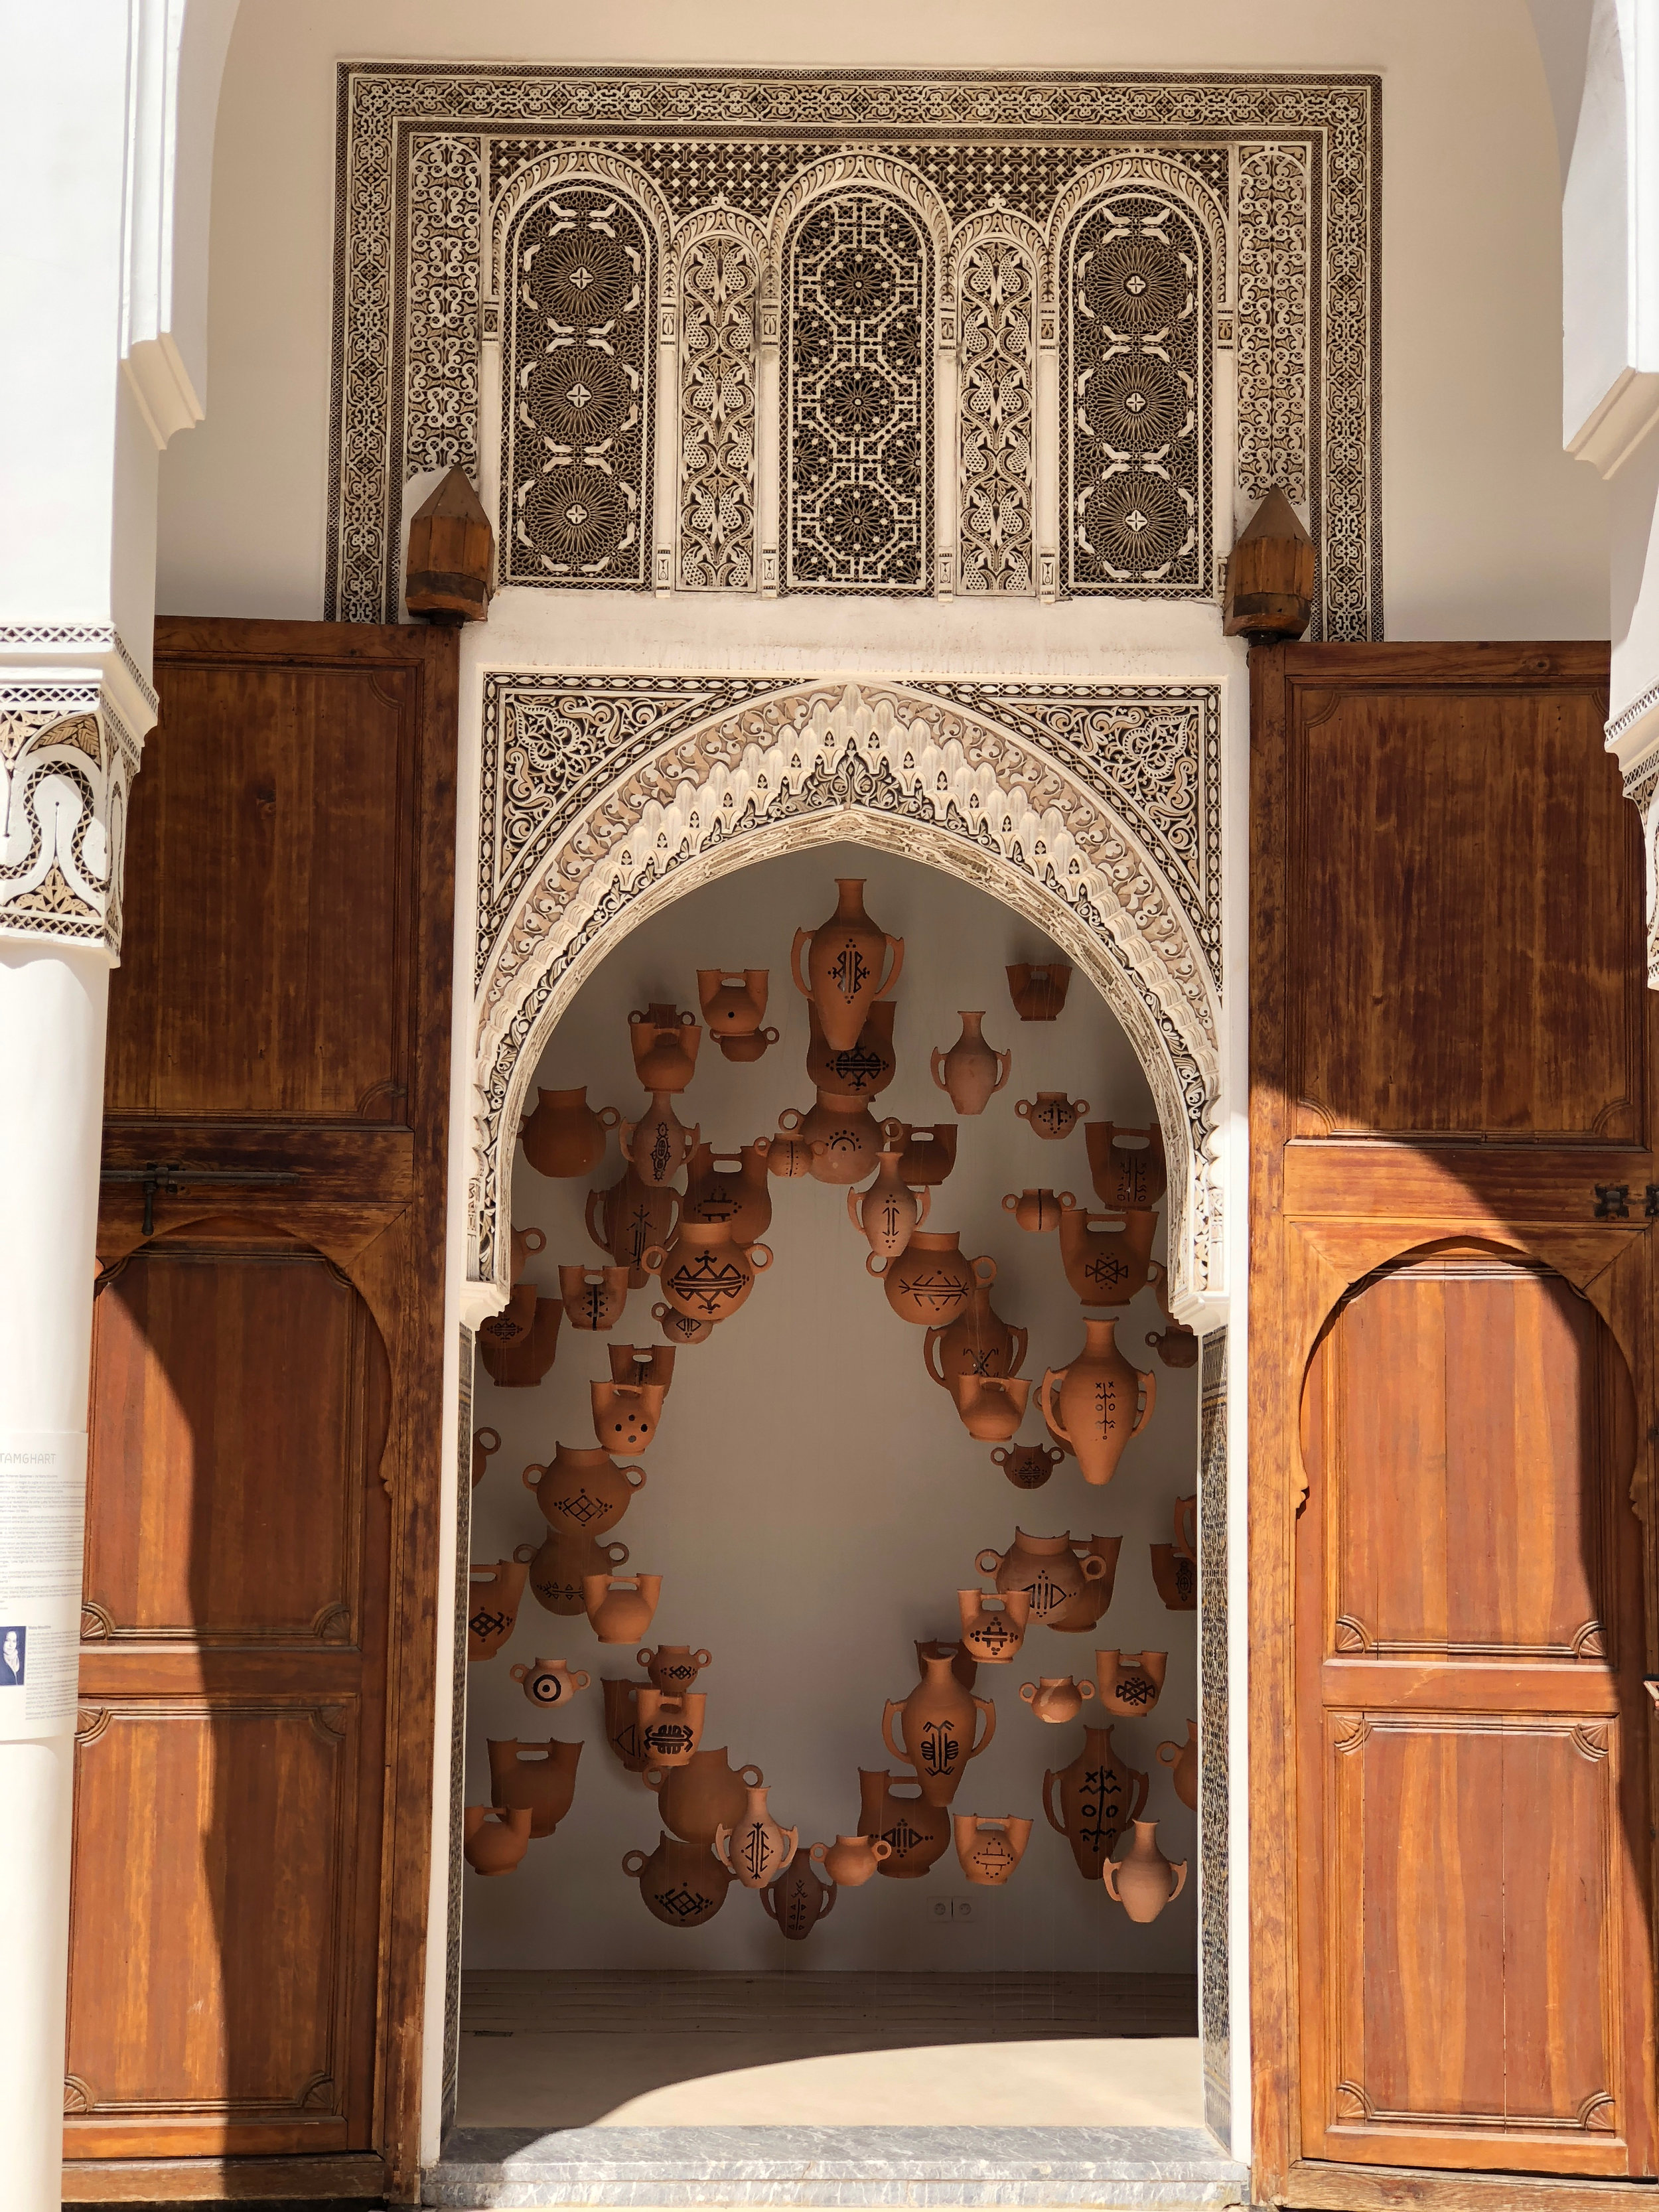 Morocco - Tours         &         Architecture Retreats -